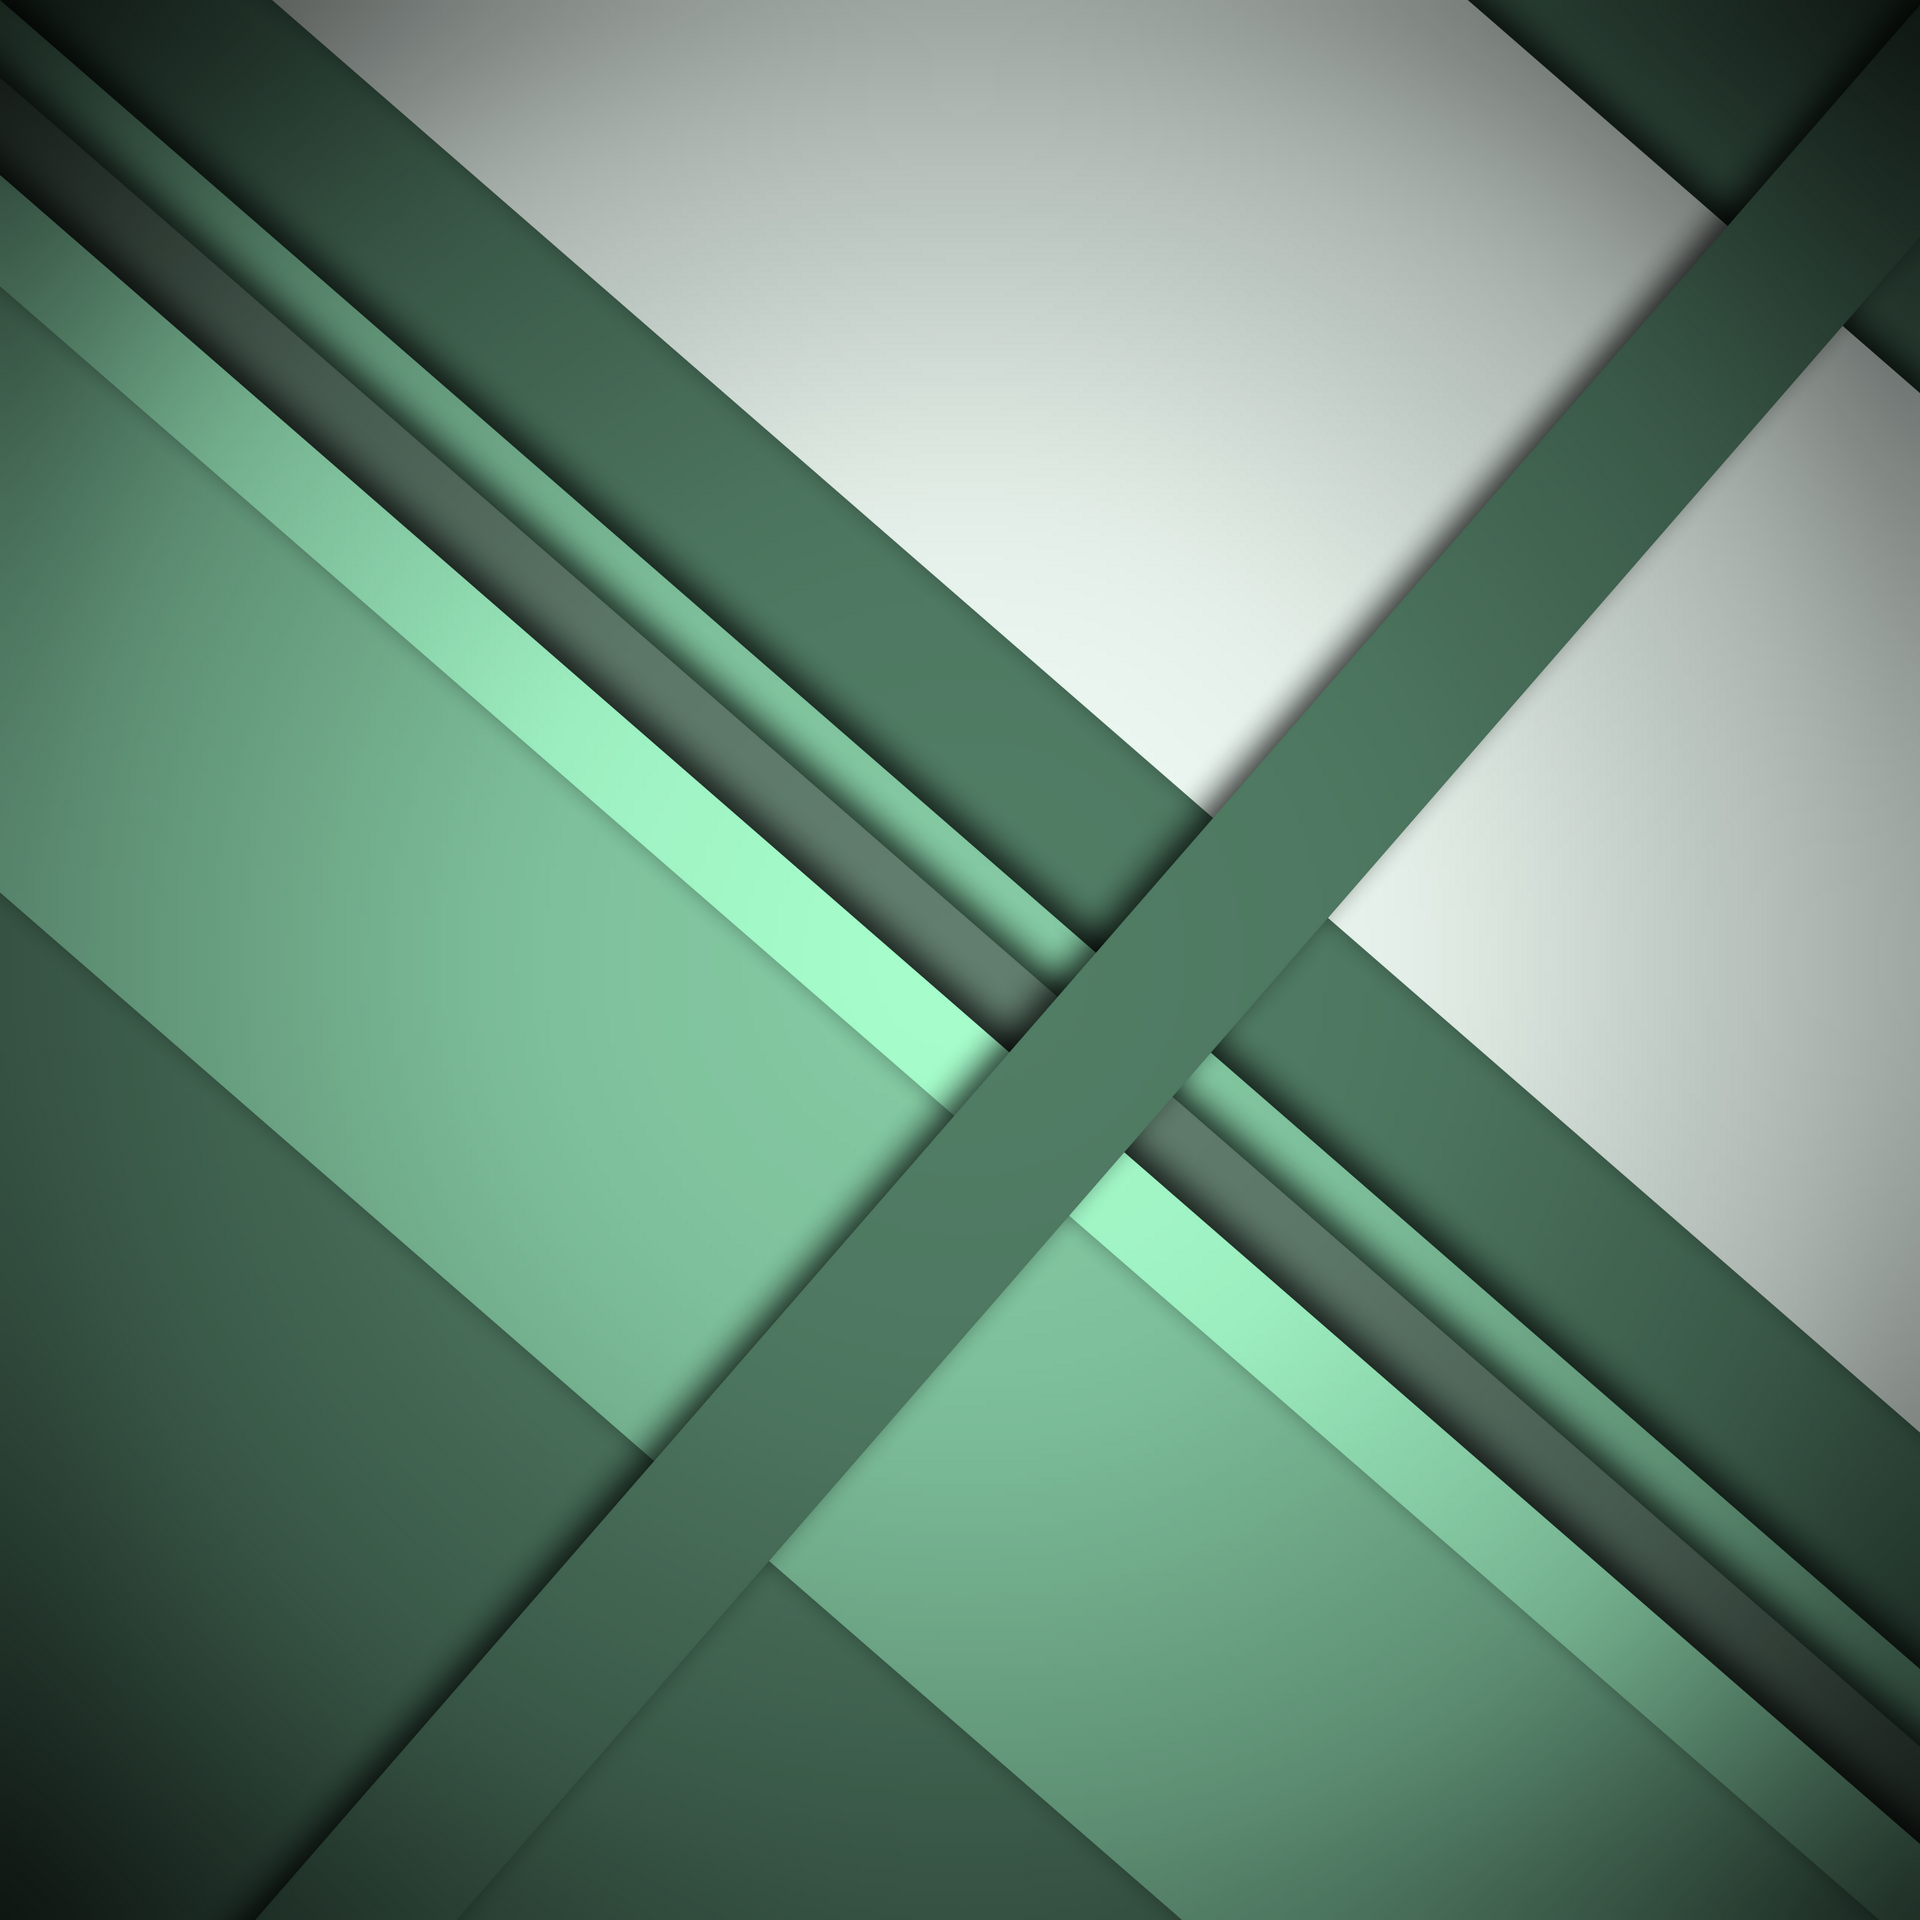 Material Design HD Wallpaper No 0682